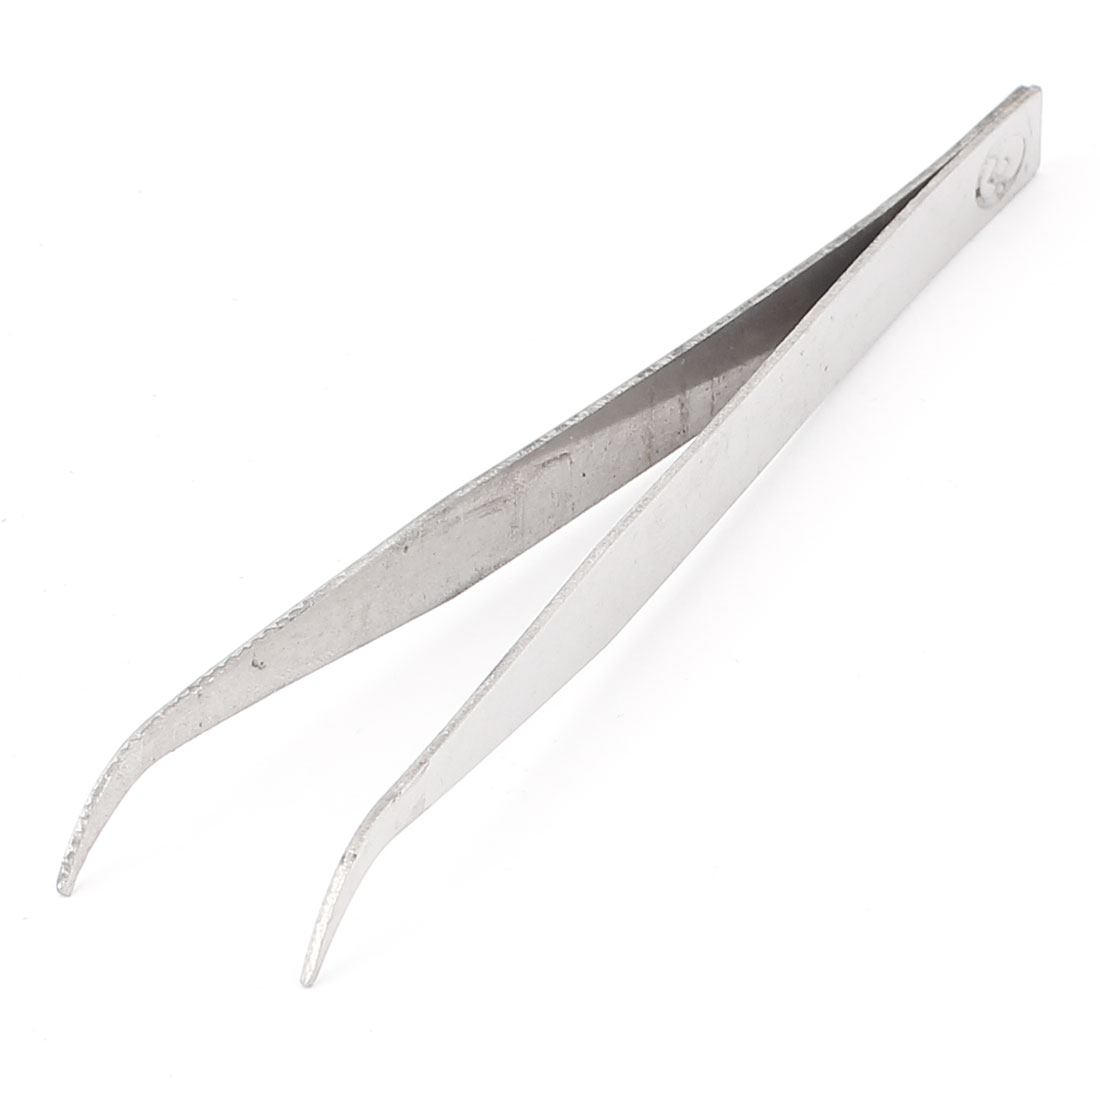 Nonmagnetic Stainless Steel Curved Tip Tweezers Plier Hand Tool